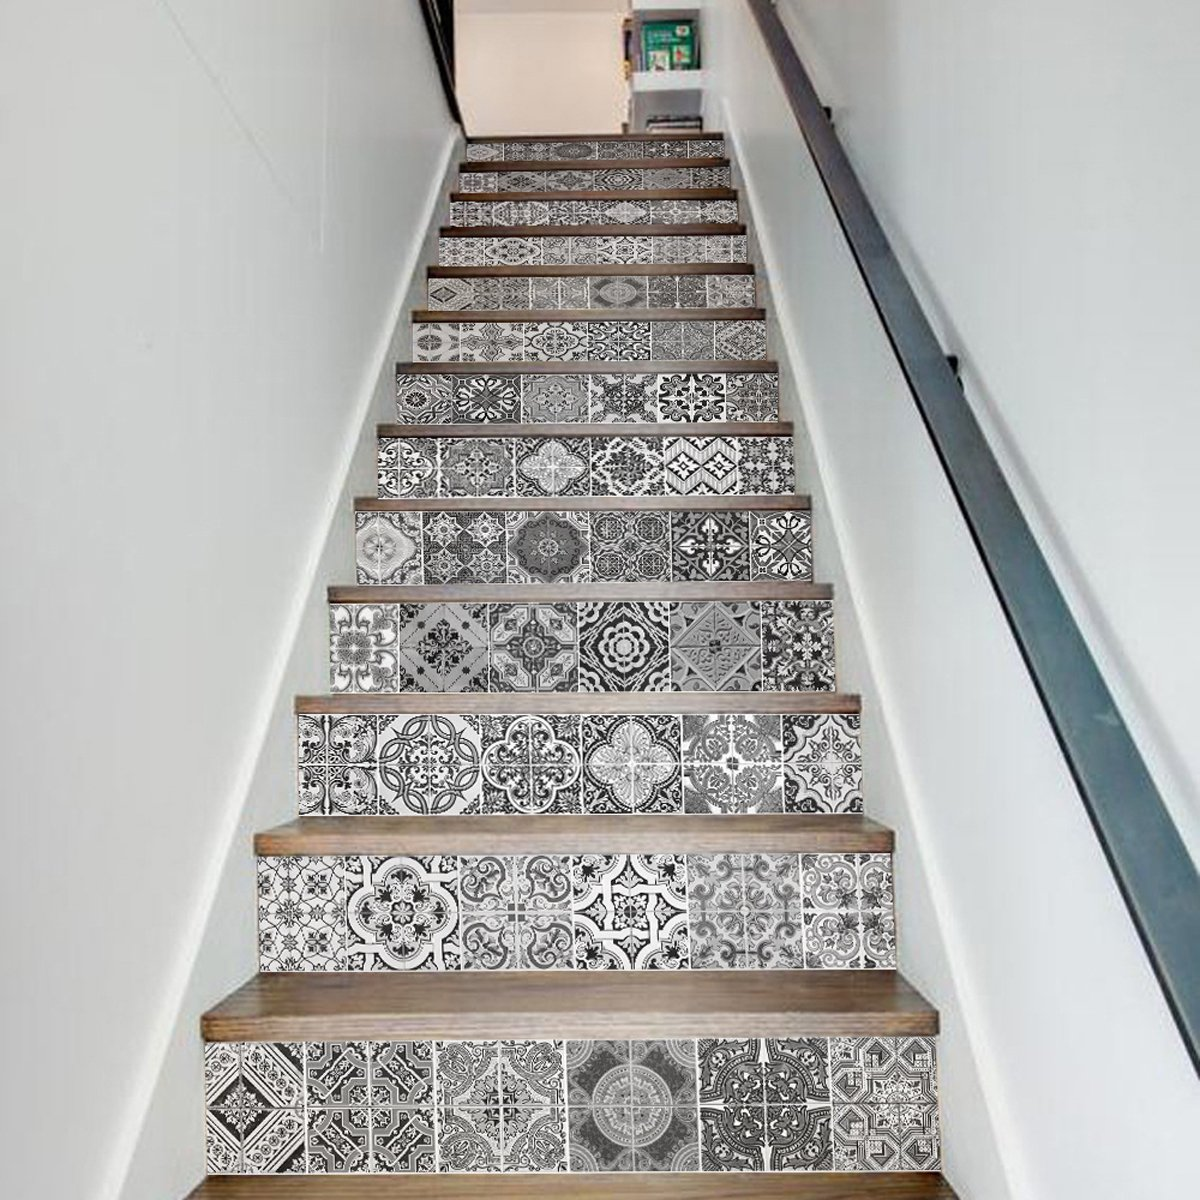 Mandala Decorative Tile Stickers Pack of 13 Strips,Peel & Stick Adhesive Tile Stickers, for Walls Kitchen Bathroom Stair Decals Home Decorations,Backsplash Tile Stickers(FS045)